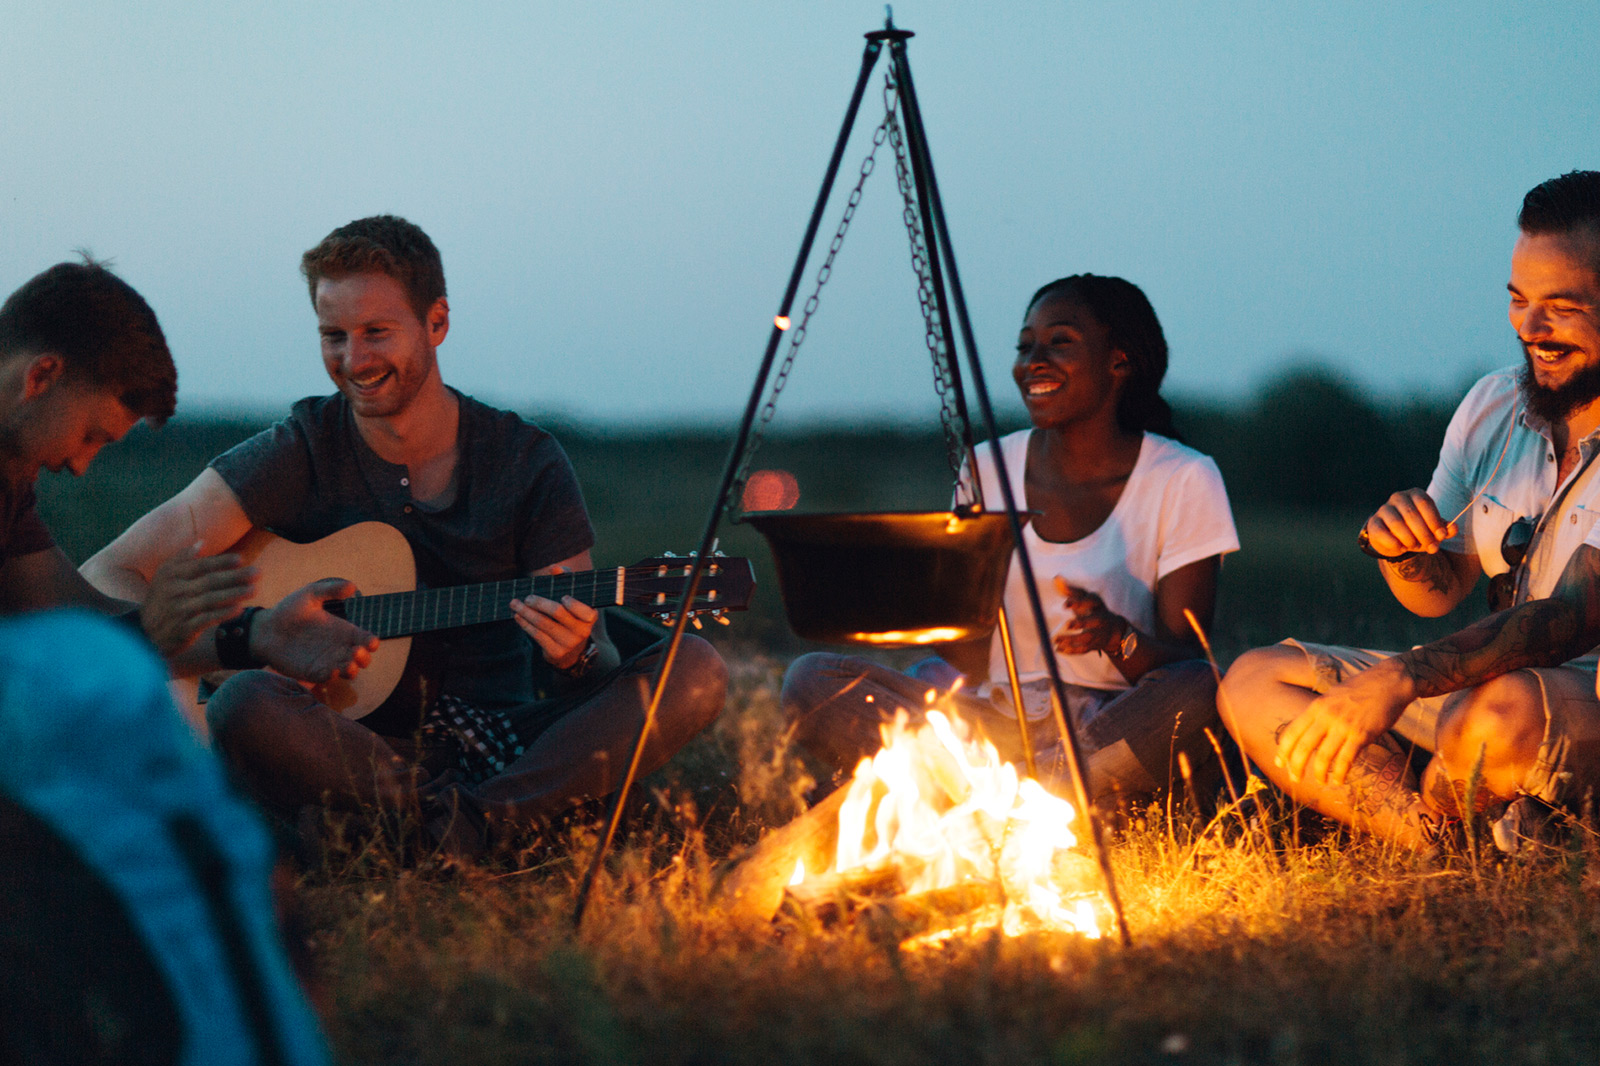 Campfire Song Guitar Chords